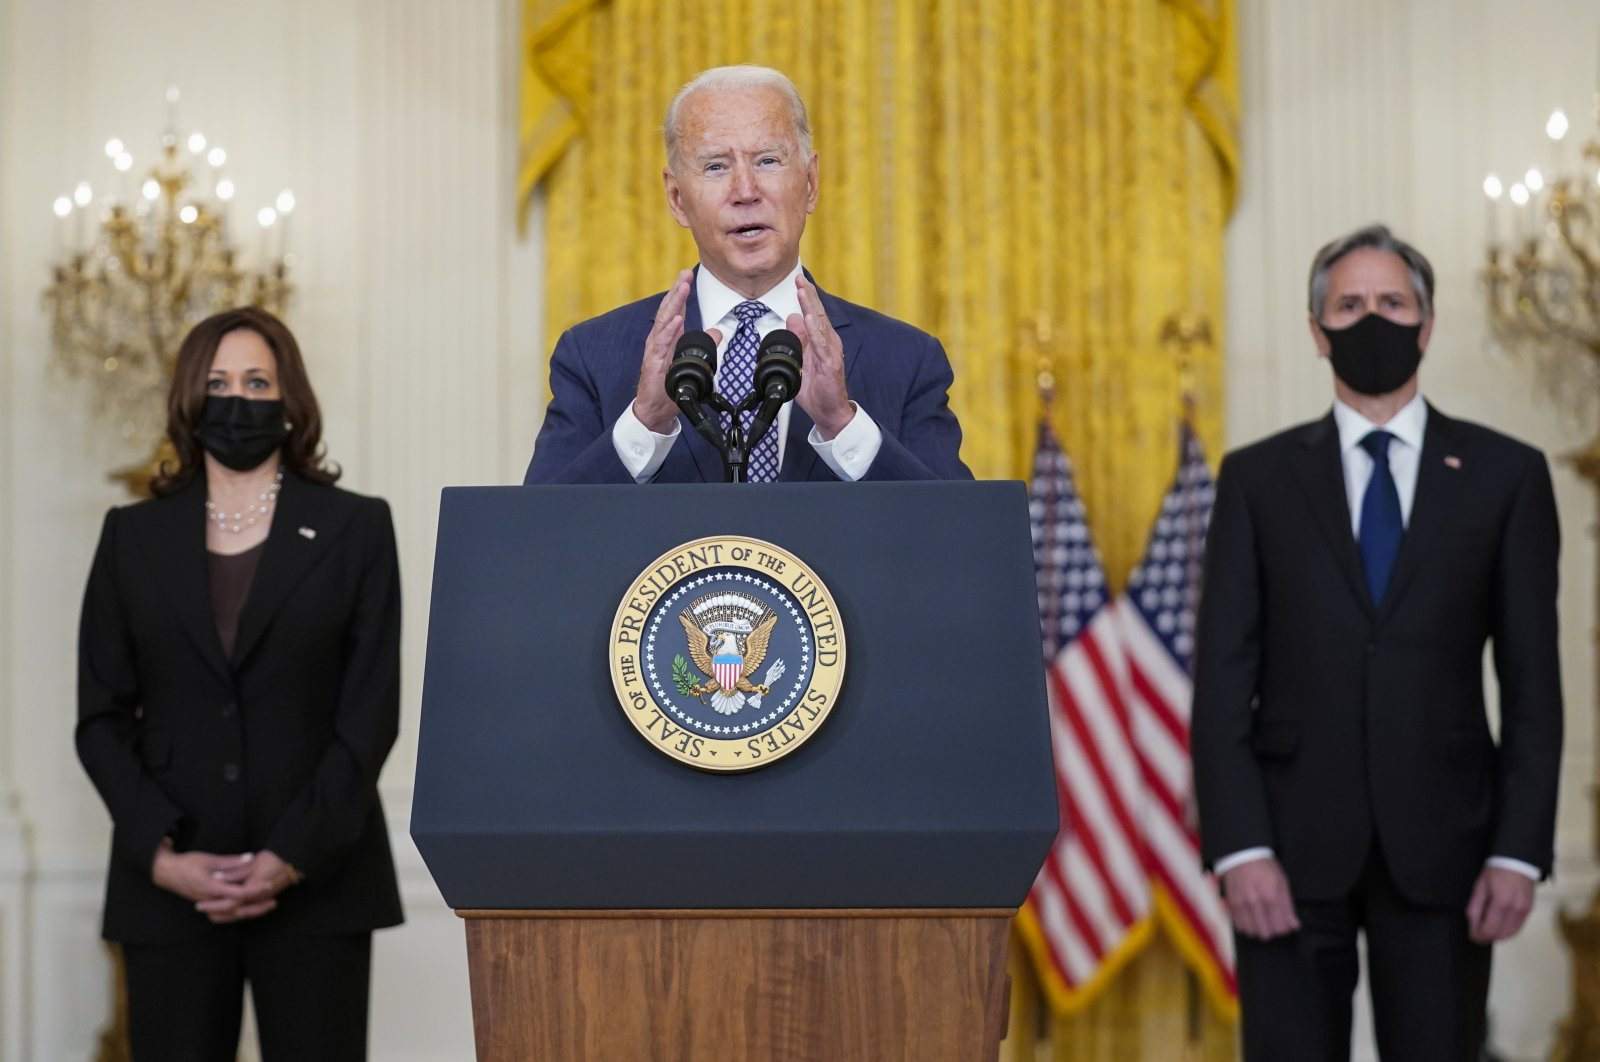 President Joe Biden speaks about the latest developments in Afghanistan in the East Room of the White House, Washington D.C., U.S., Aug. 20, 2021. (AP Photo)